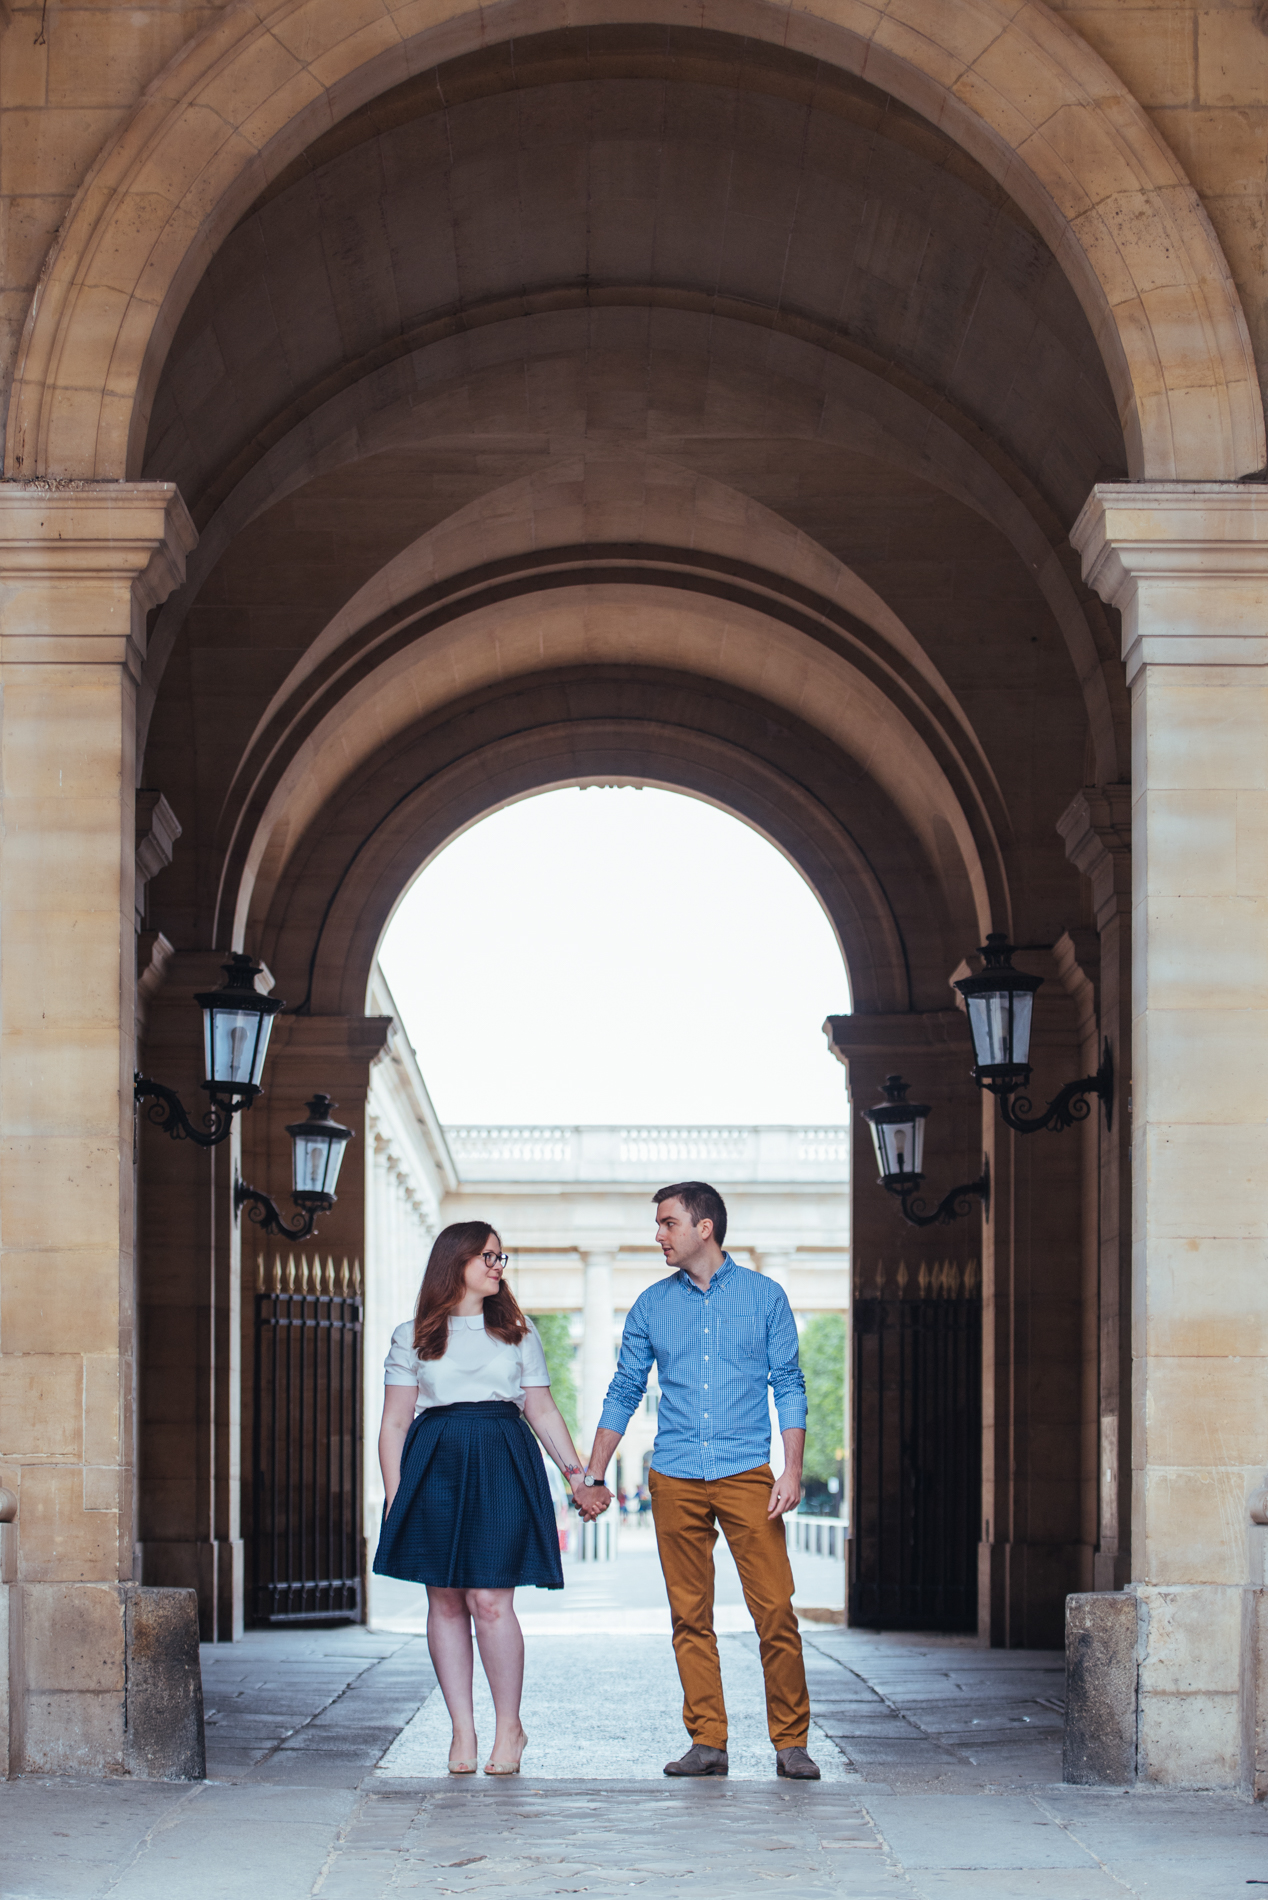 seance-engagement-paris-maldeme-photographe-palais royal-2